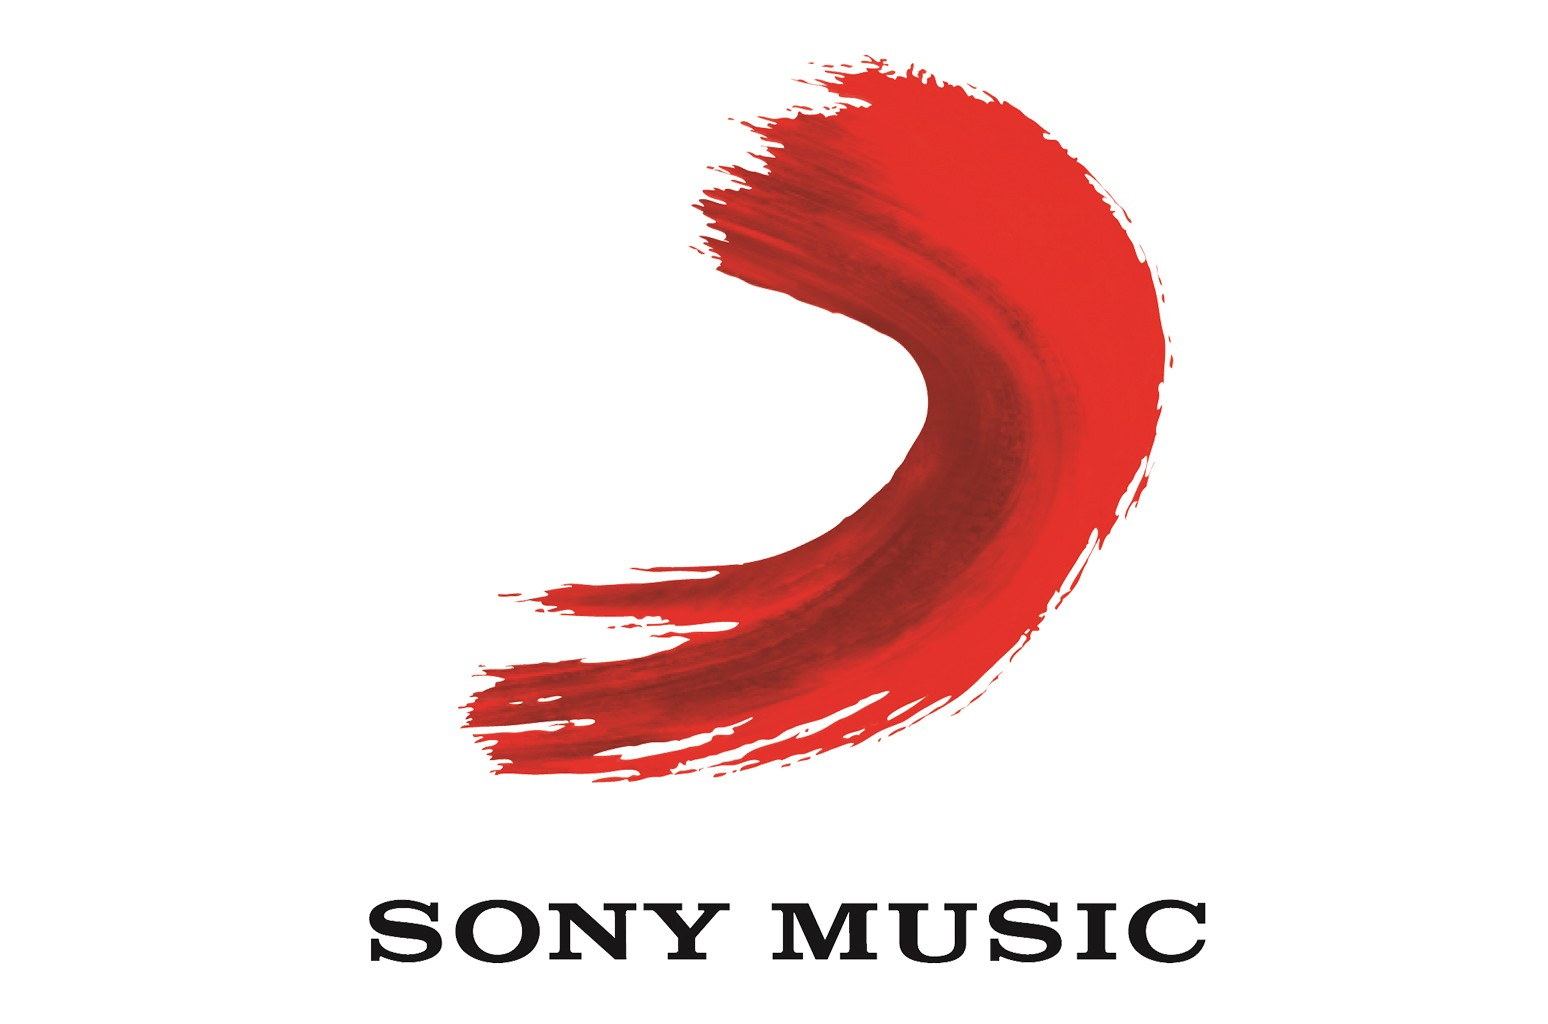 Sony Music Diversifies Digital Distribution in China With Tencent, NetEase Deals